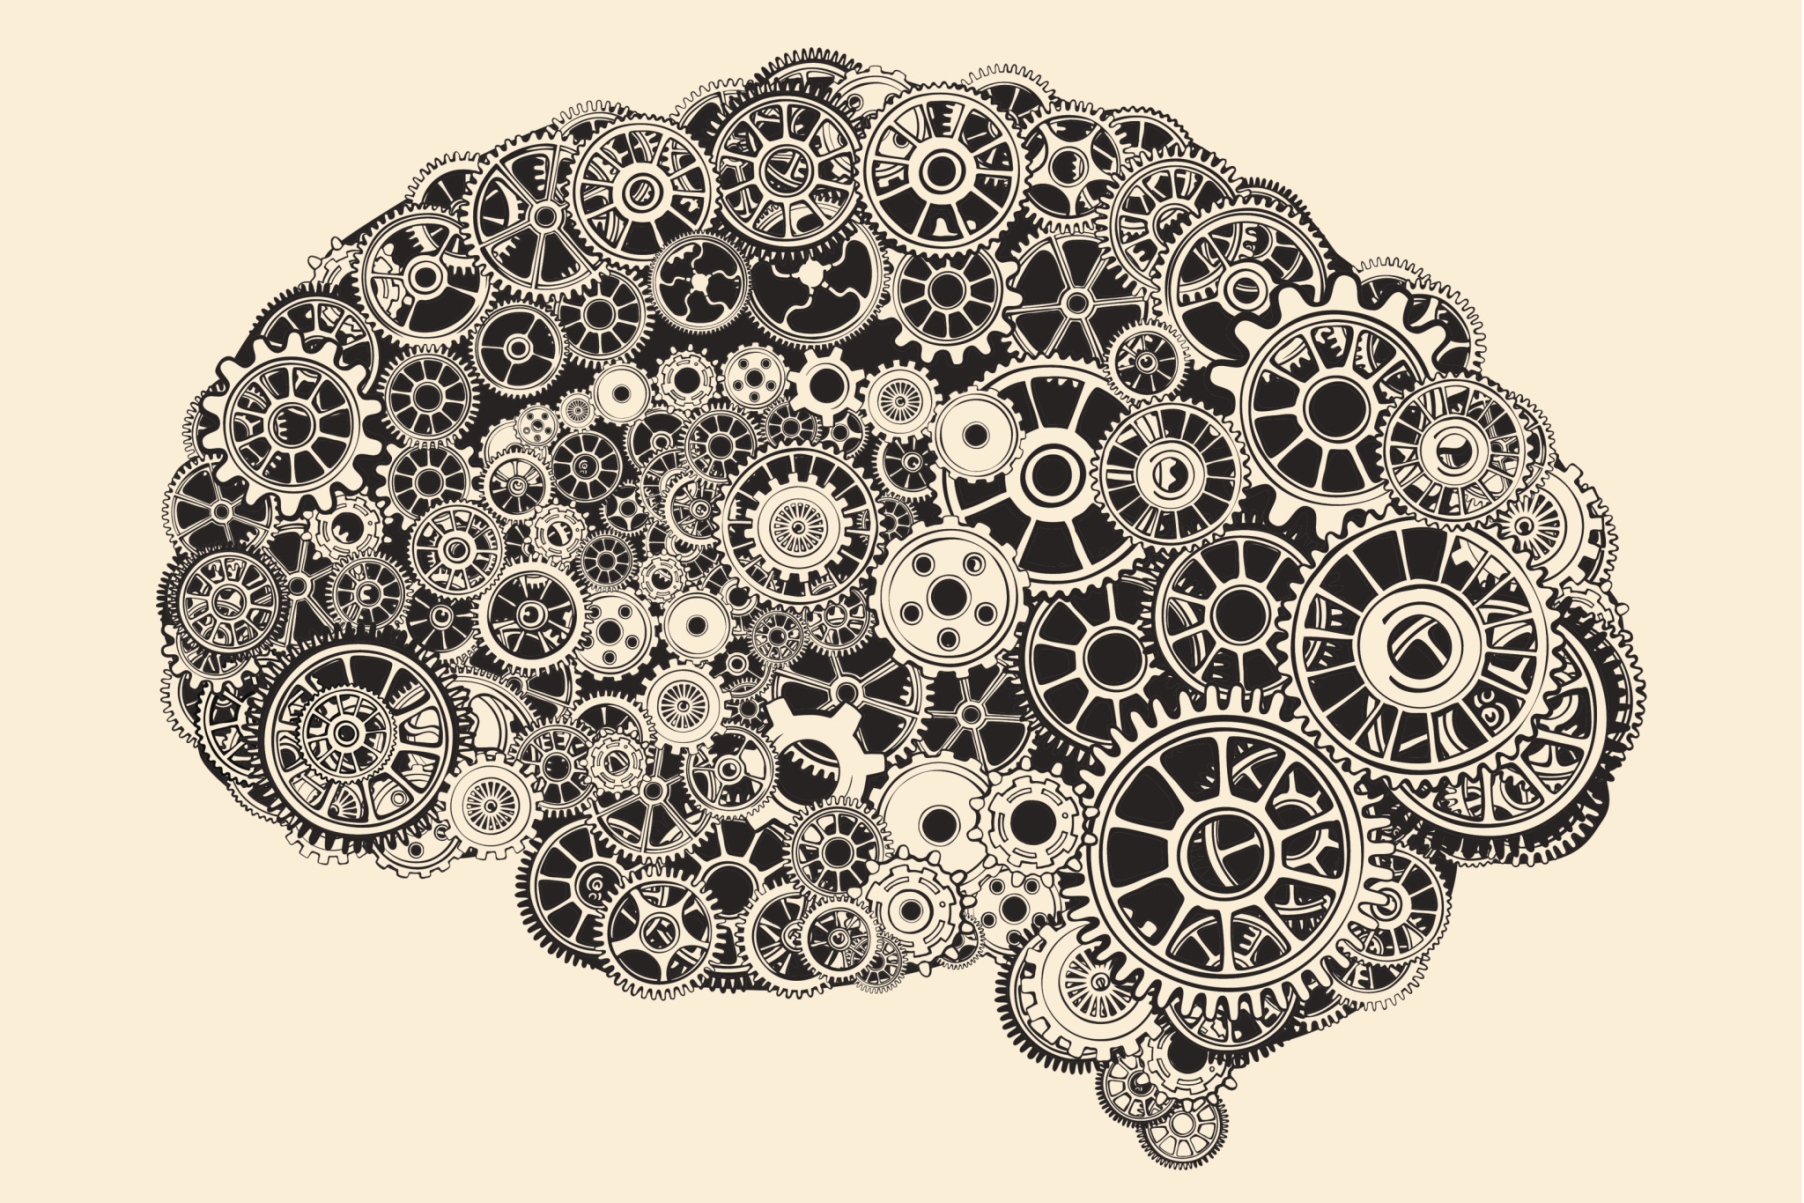 Easy Ways to Protect Your Aging Brain | Wellness | US News